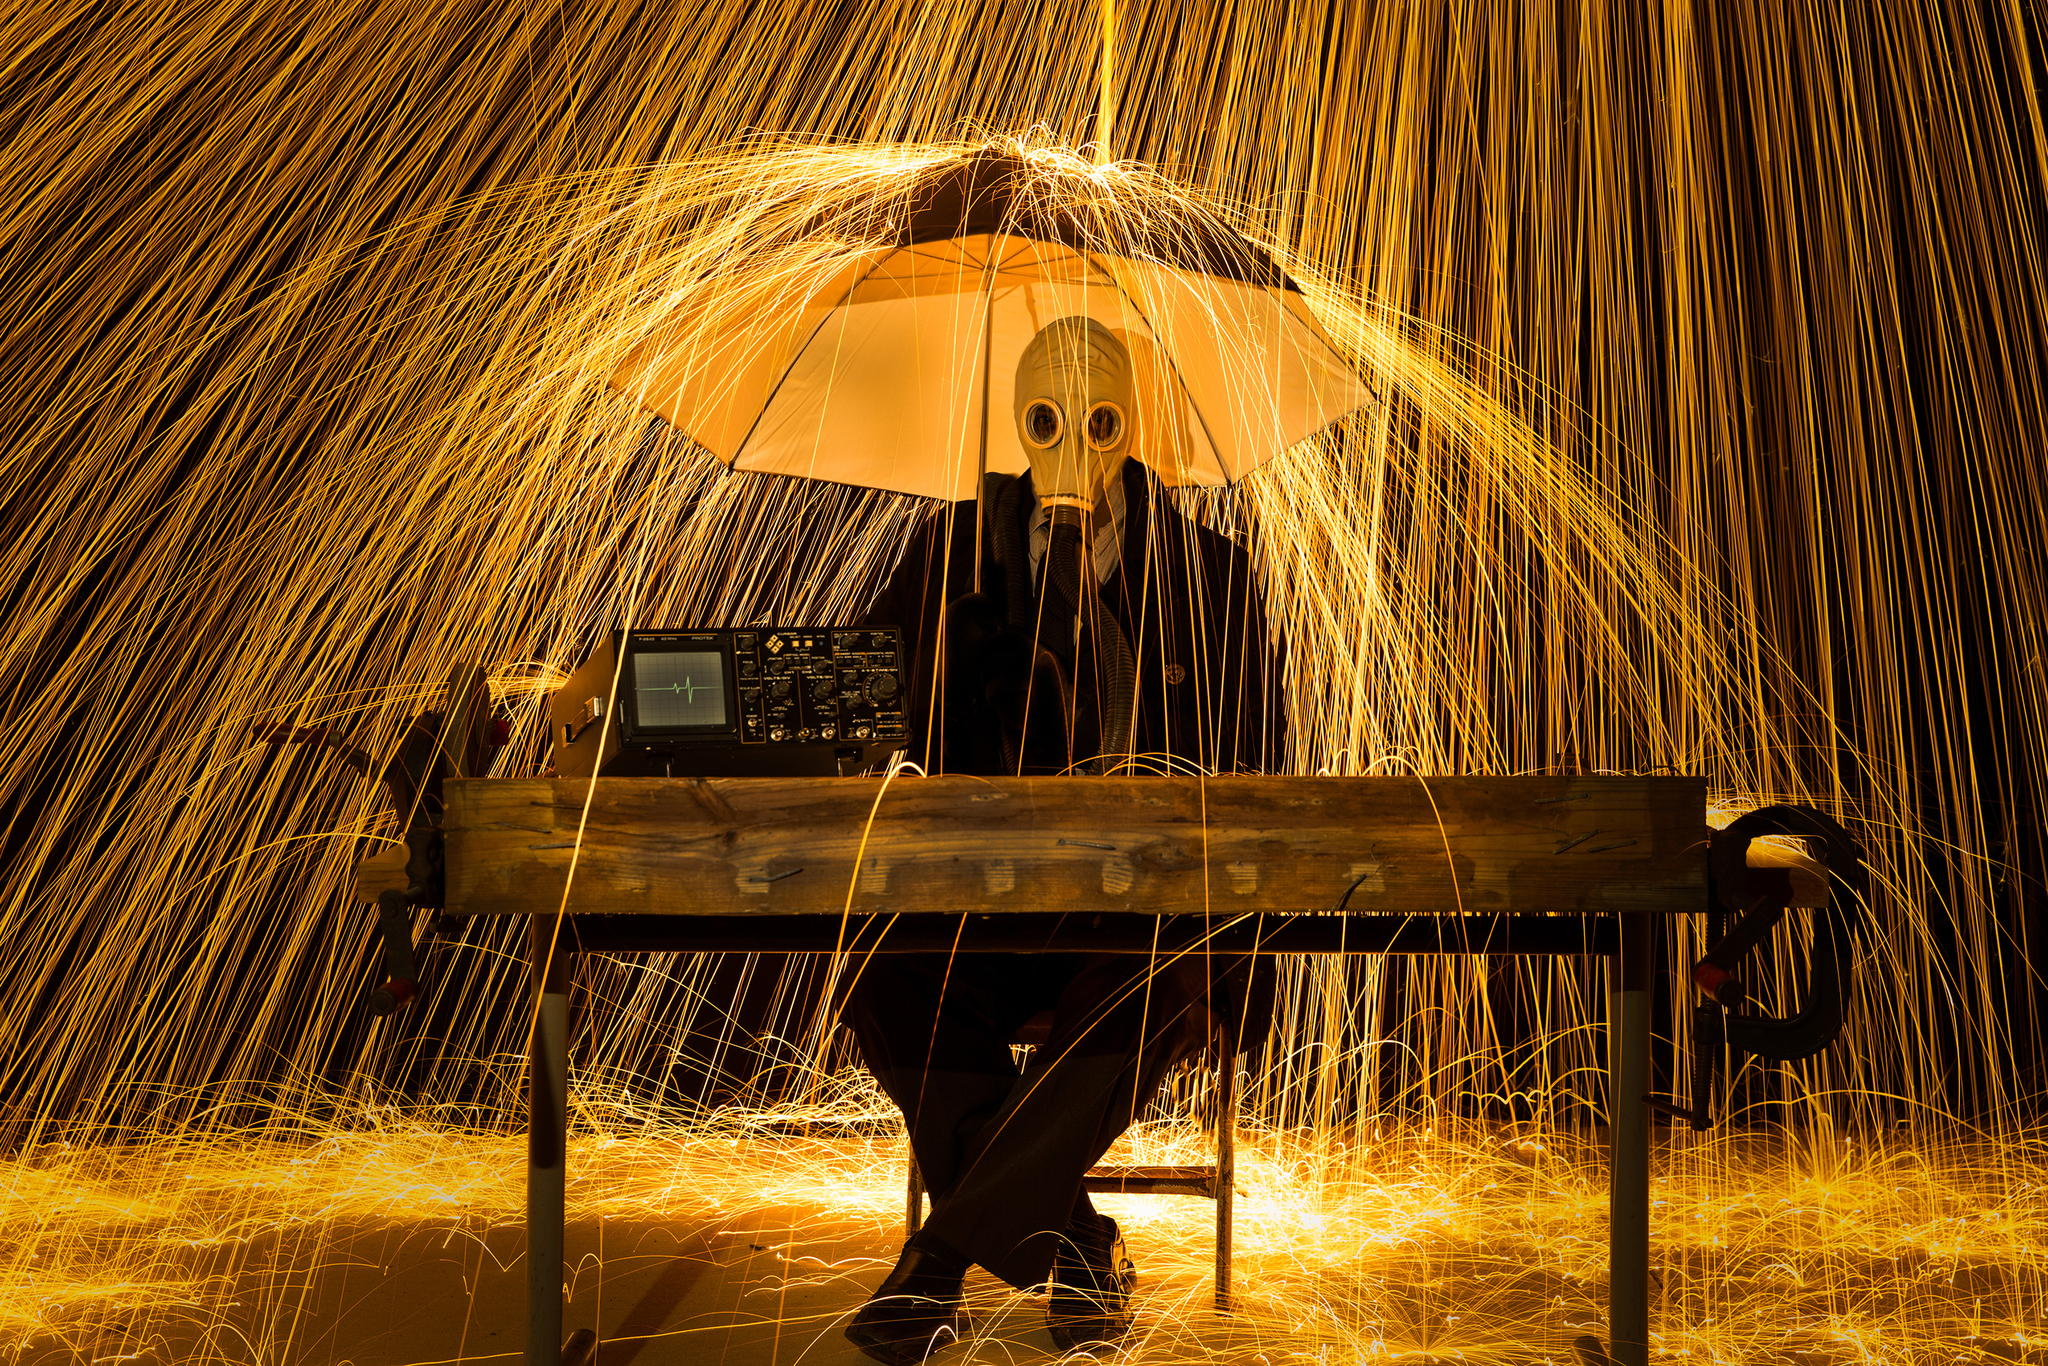 21 Fiery Photos: The Best Steel Wool Photography on 500px